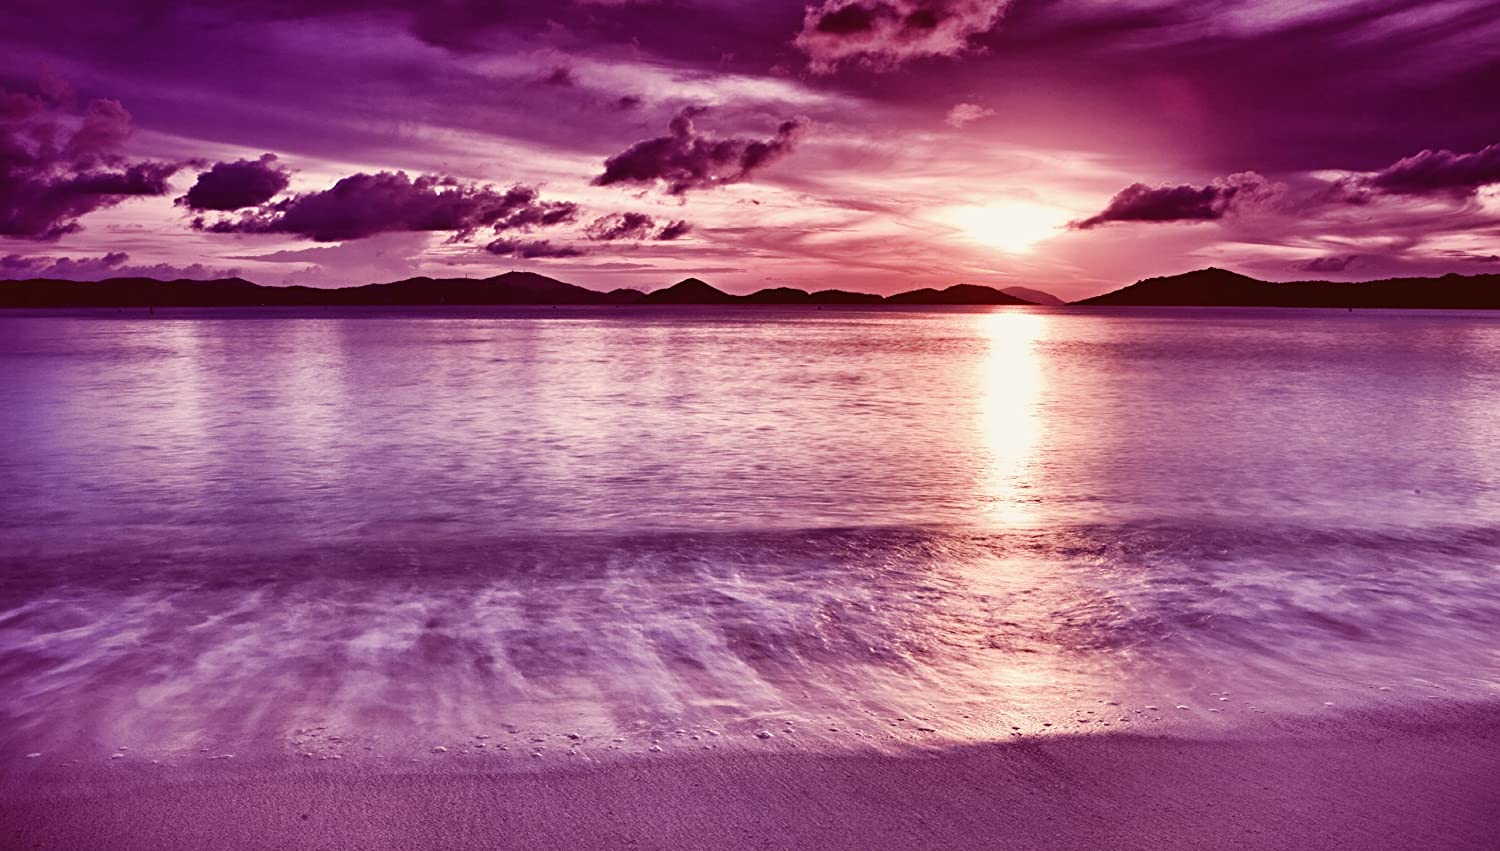 Large Purple Canvas Art Sunset Beach 36 X 20 Inches Mounted And Ready To Hang Amazon Co Uk Kitchen Home